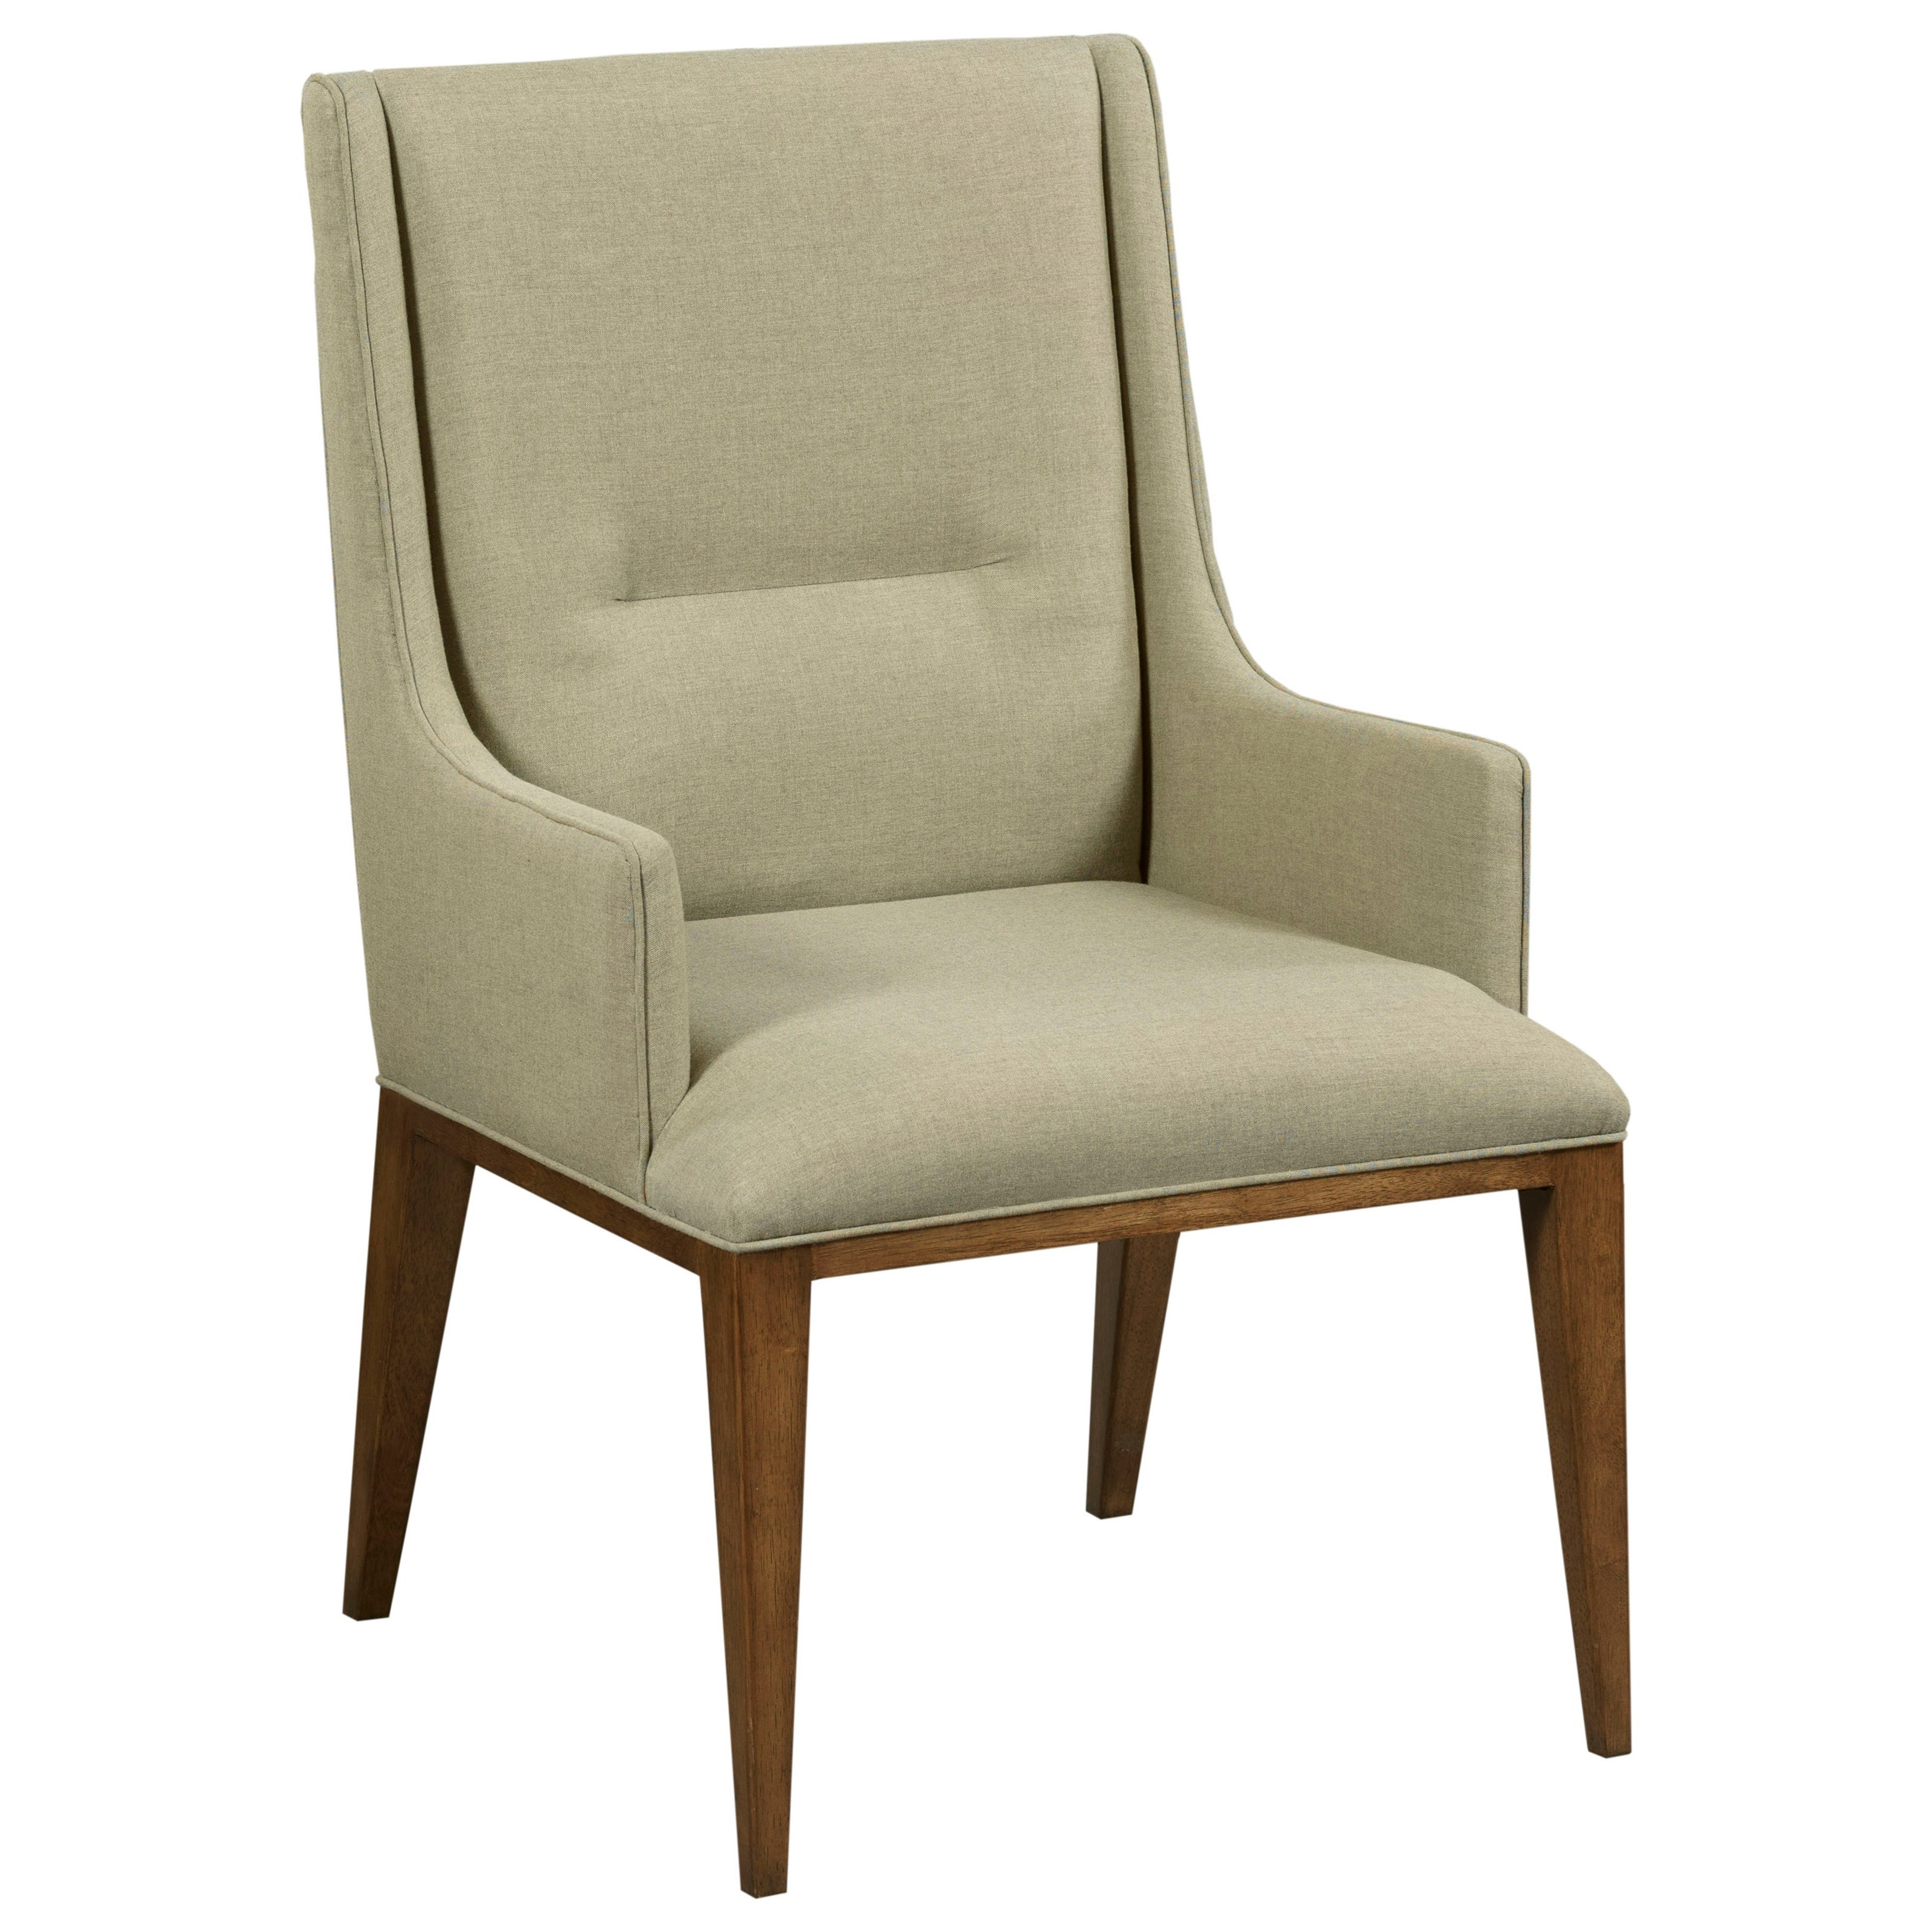 Modern Synergy Contour Arm Chair by American Drew at Stoney Creek Furniture